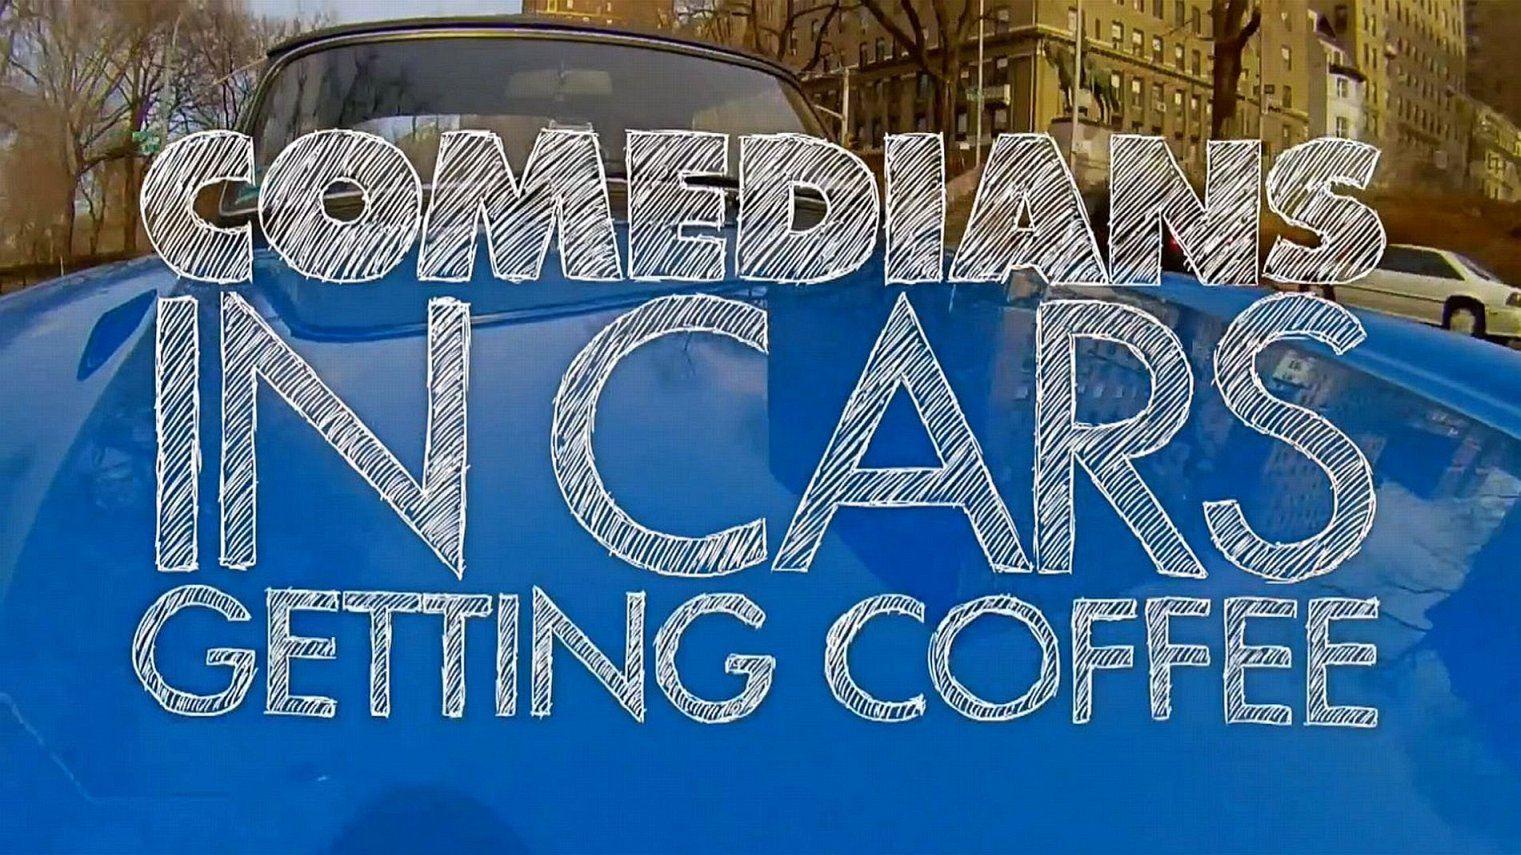 what time is Comedians in Cars Getting Coffee on